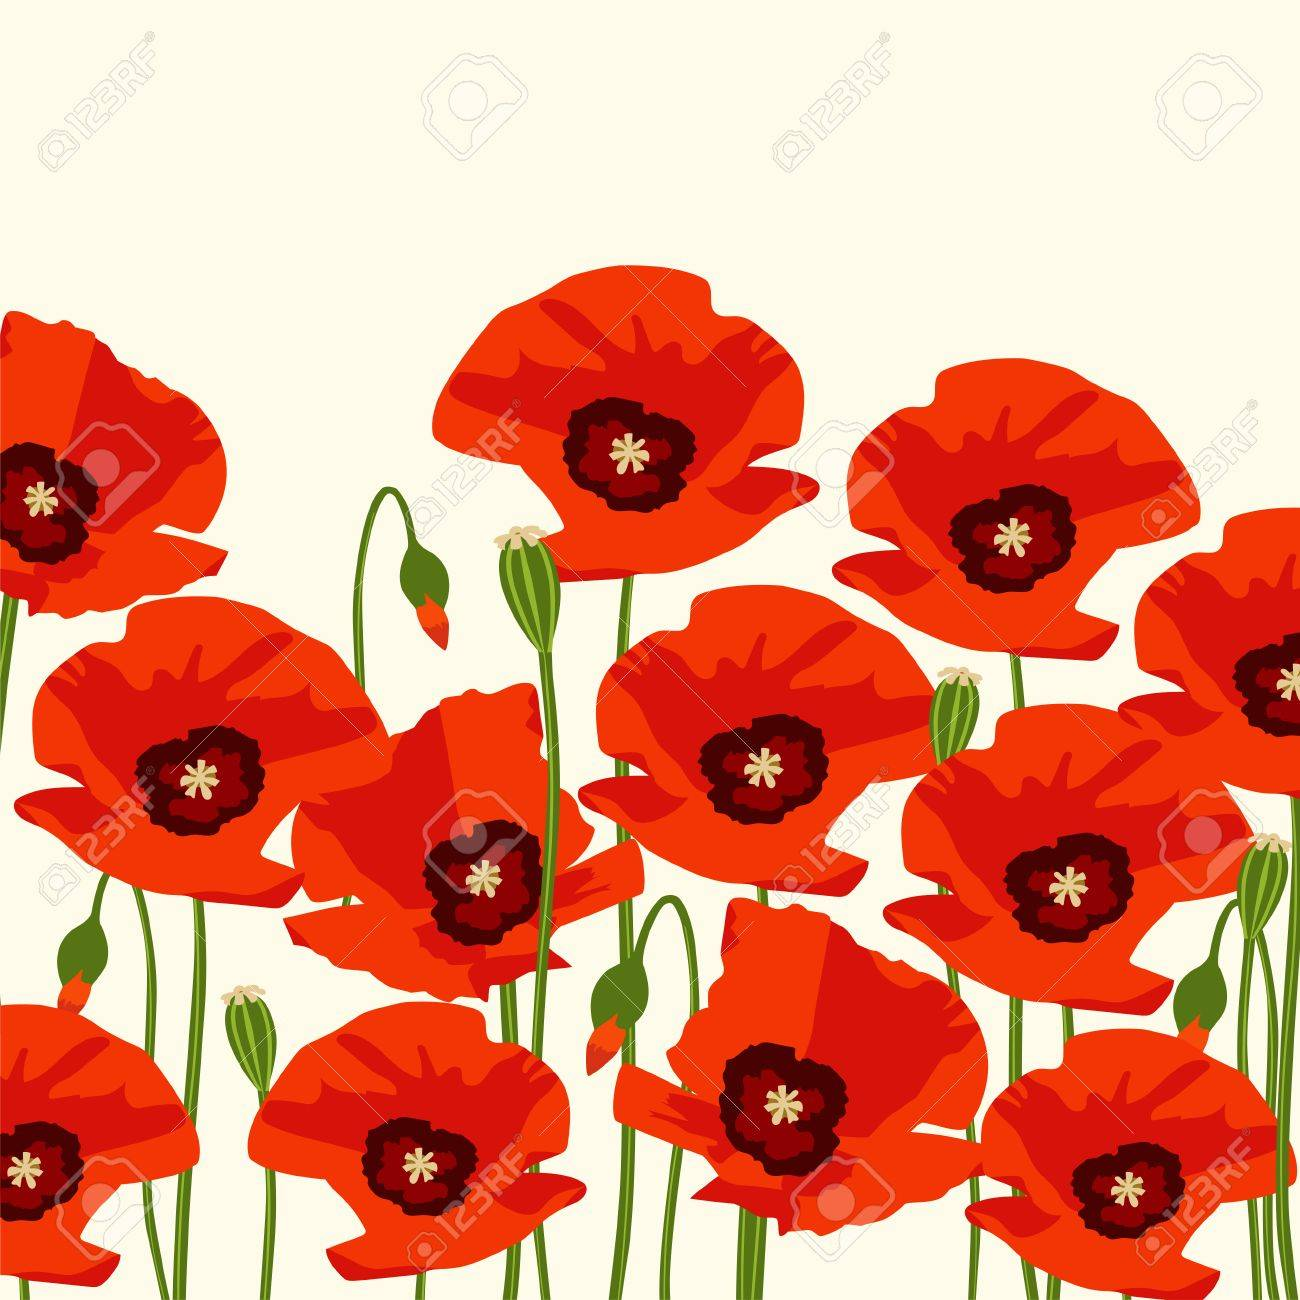 The red poppy flowers background vector illustration royalty free the red poppy flowers background vector illustration stock vector 69249388 mightylinksfo